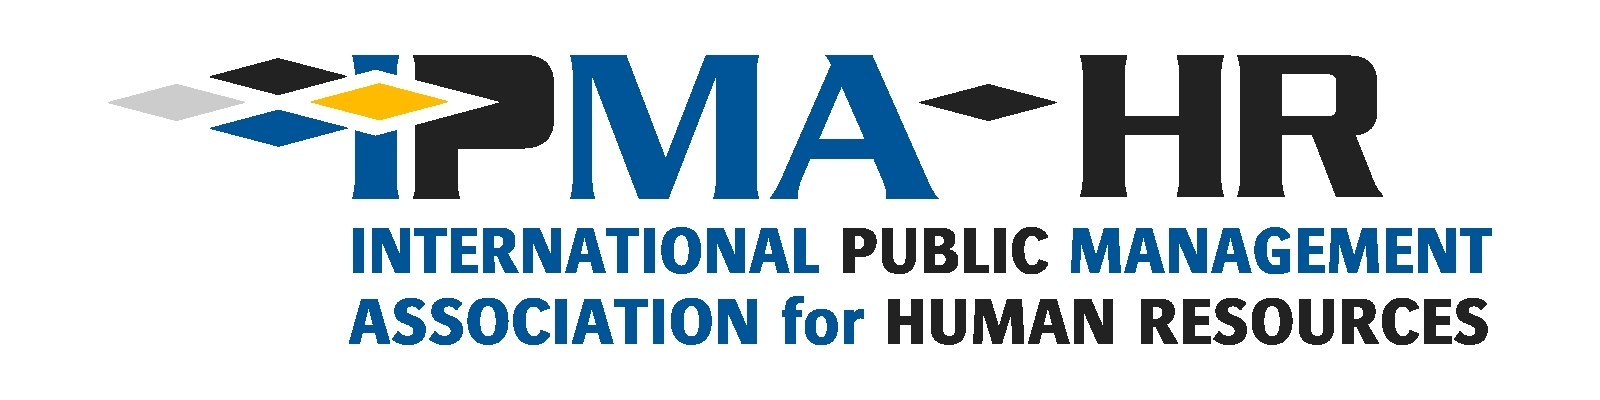 Cps Hr Consulting And Ipma Hr Team Up To Provide Employee Engagement